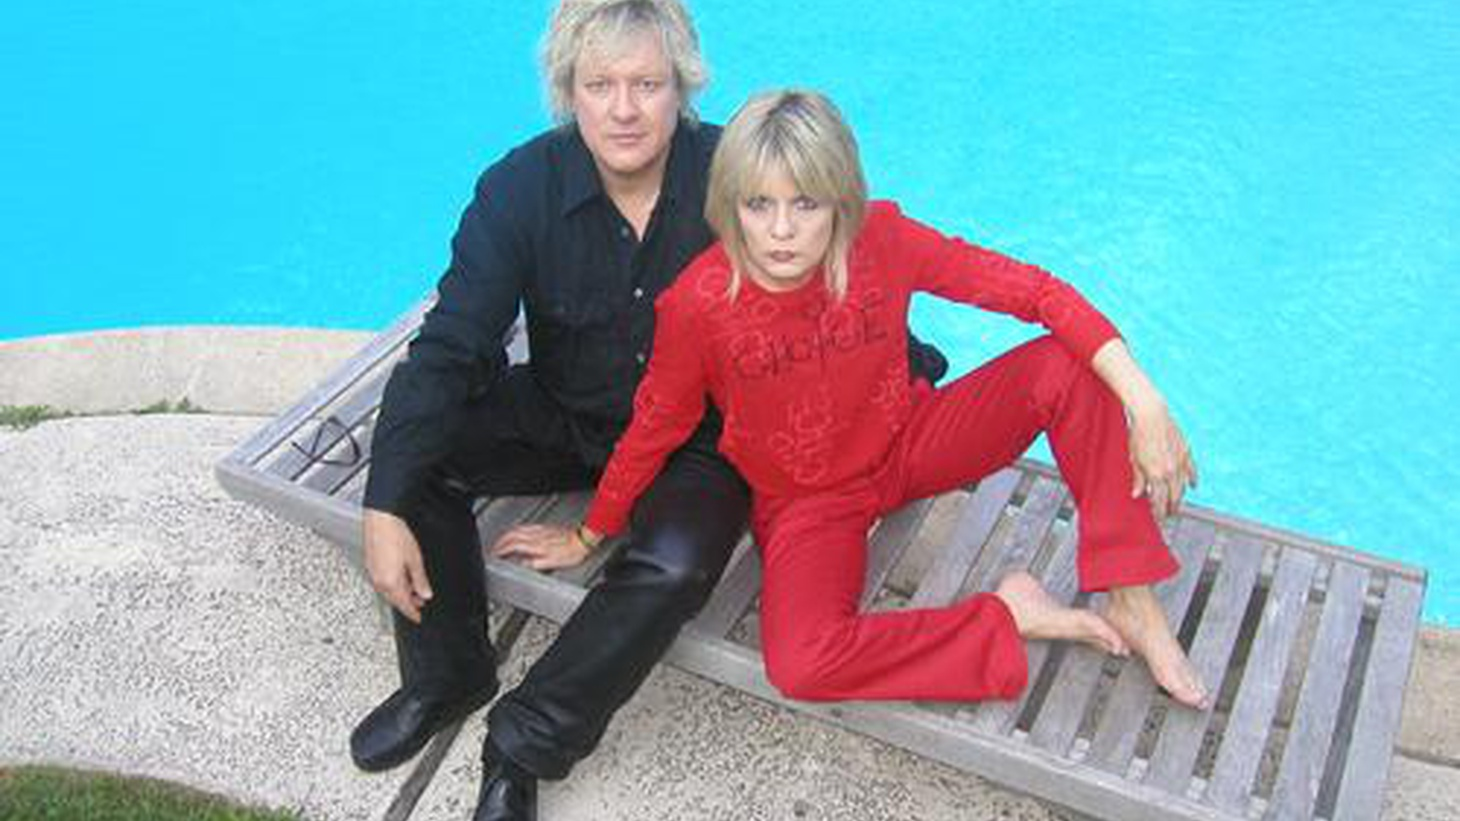 Founding members of the Talking Heads Chris Frantz and Tina Weymouth are back with new work from their project Tom Tom Club.